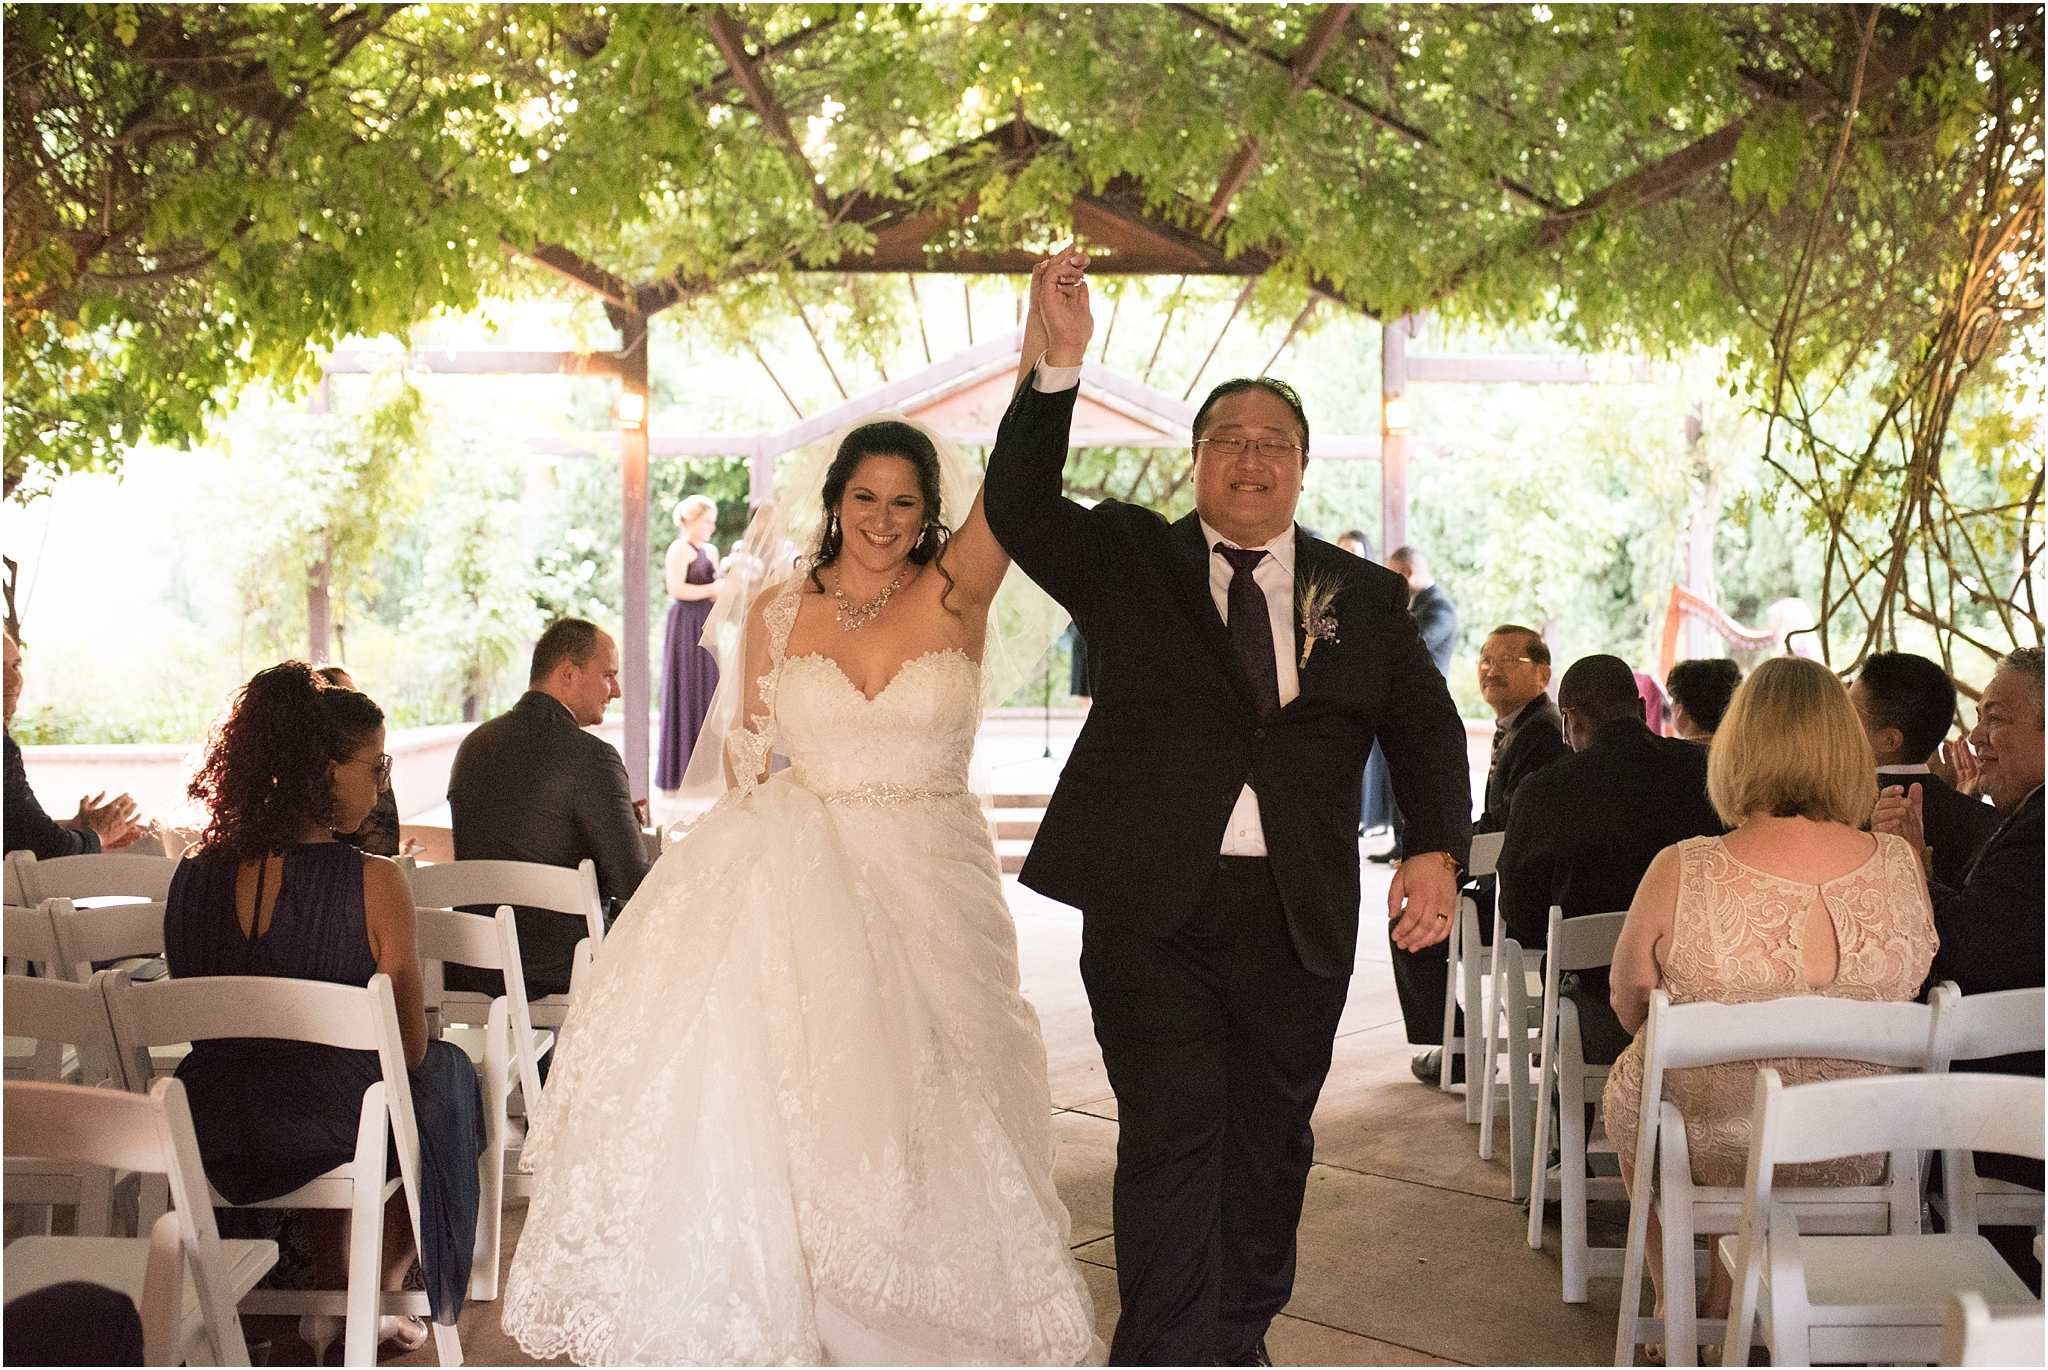 kayla kitts photography - new mexico wedding photographer - albuquerque botanic gardens - hotel albuquerque_0022.jpg